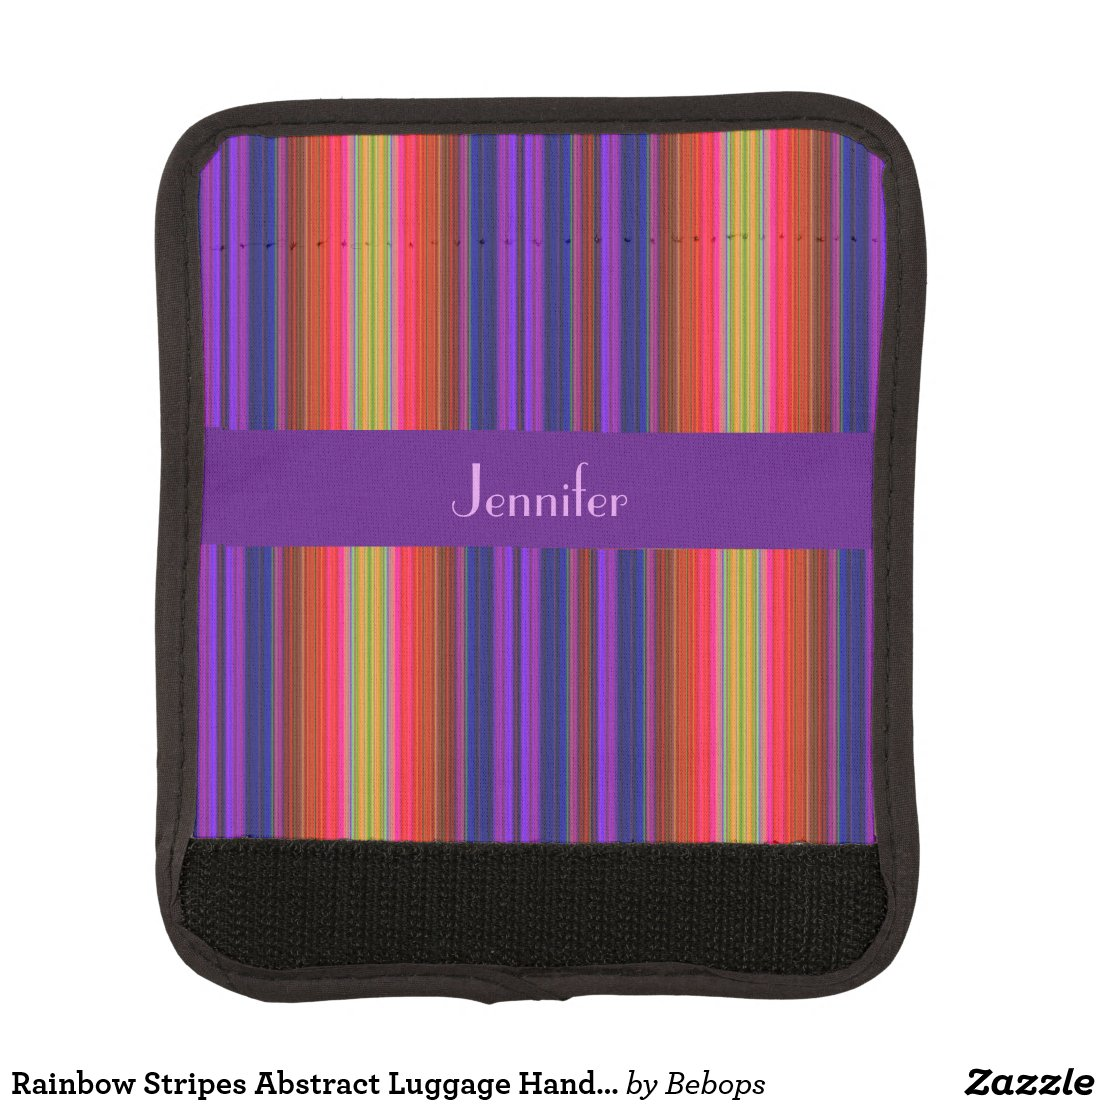 Rainbow Stripes Abstract Luggage Handle Wrap